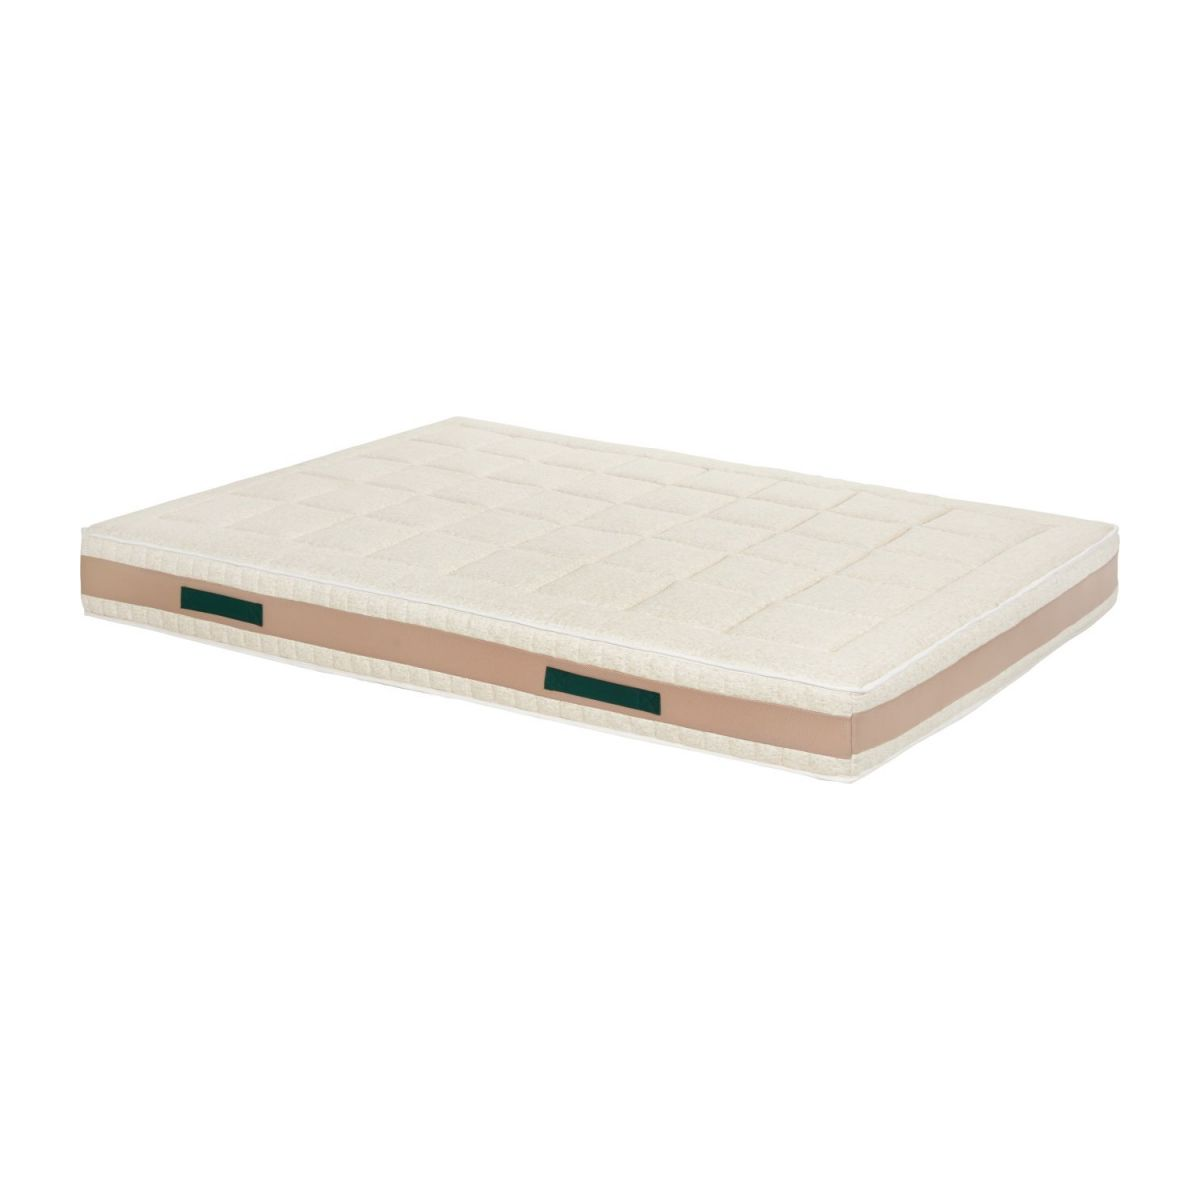 Latex mattress , width 23 cm, 160x200cm - firm support n°1